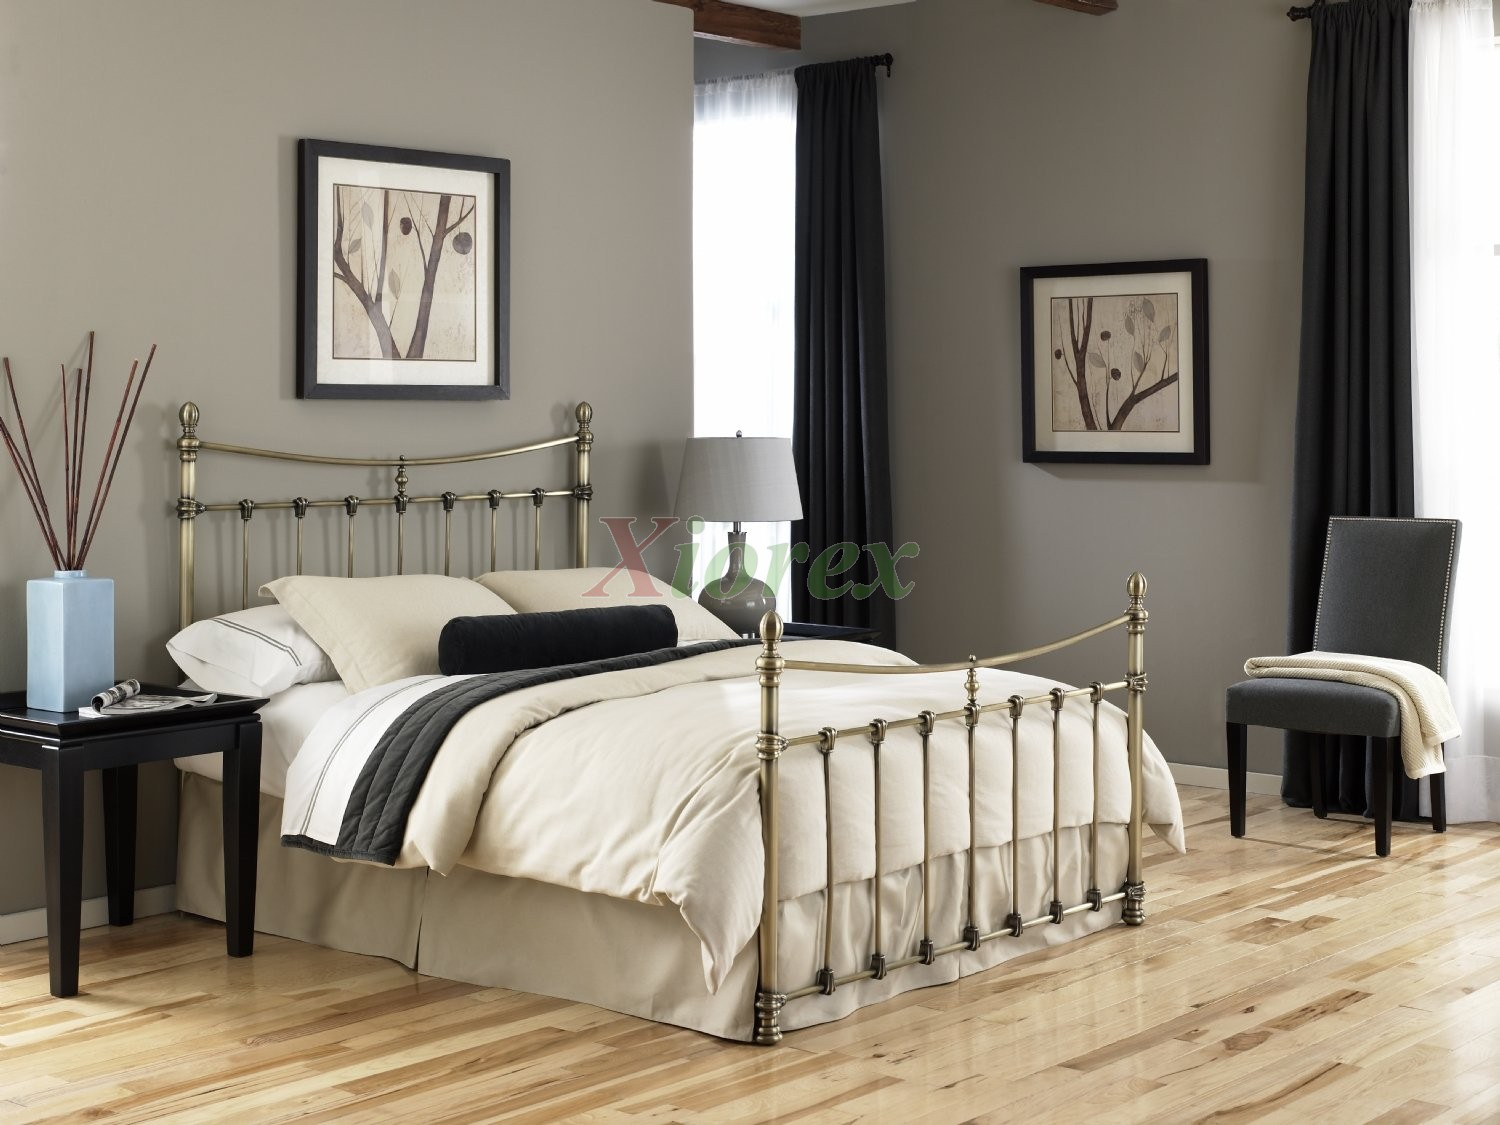 Leighton Bed - Metal Poster Bed w Glazed Brass Finish by FBG | Xiorex